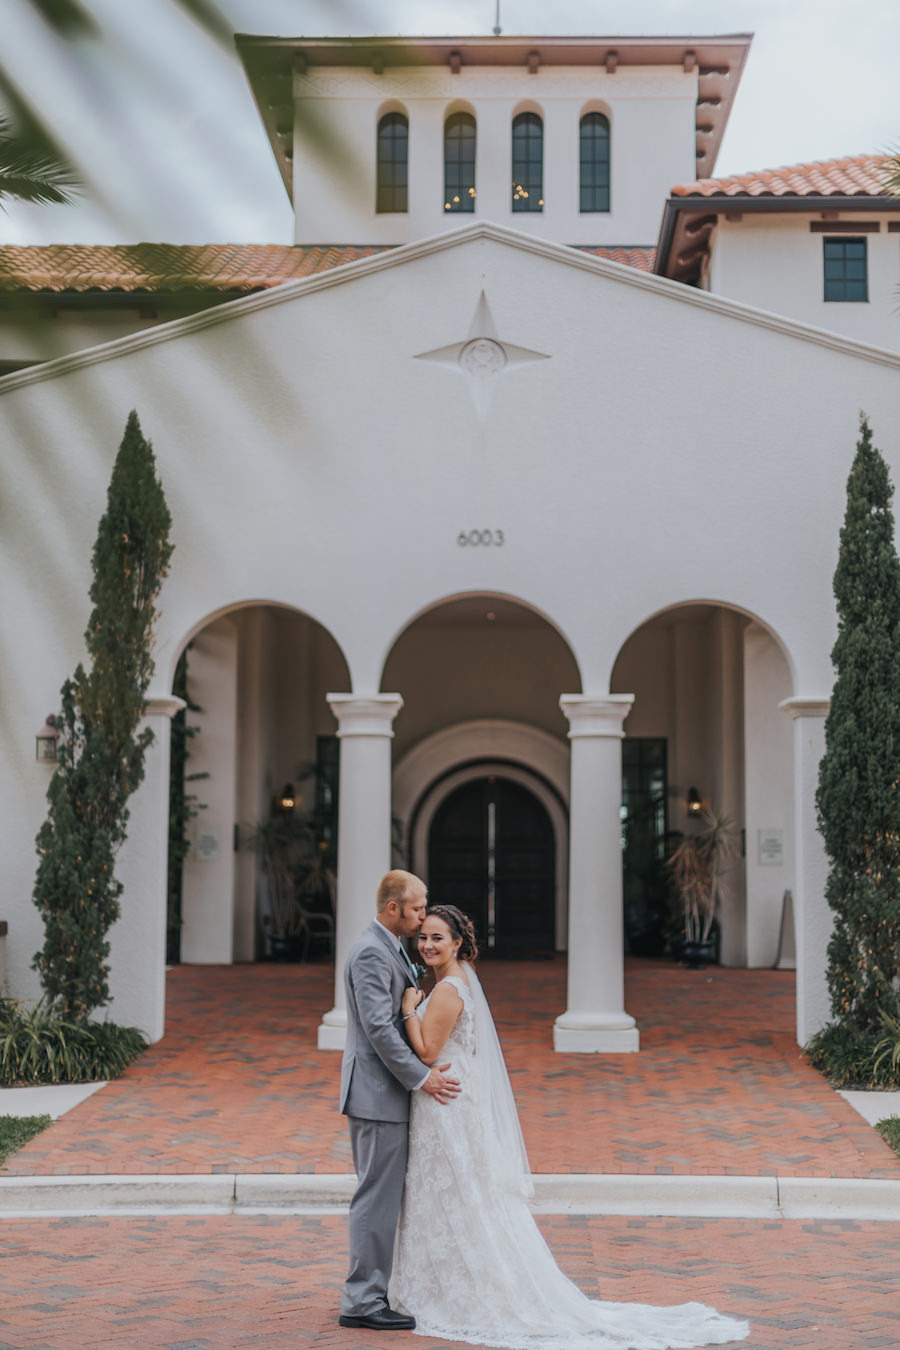 Outdoor Tampa Bay Bride and Groom Wedding Portrait at Westshore Yacht Club | South Tampa Wedding Venue Westshore Yacht Club | Tampa Bay Wedding Videographer Bonnie Newman Creative